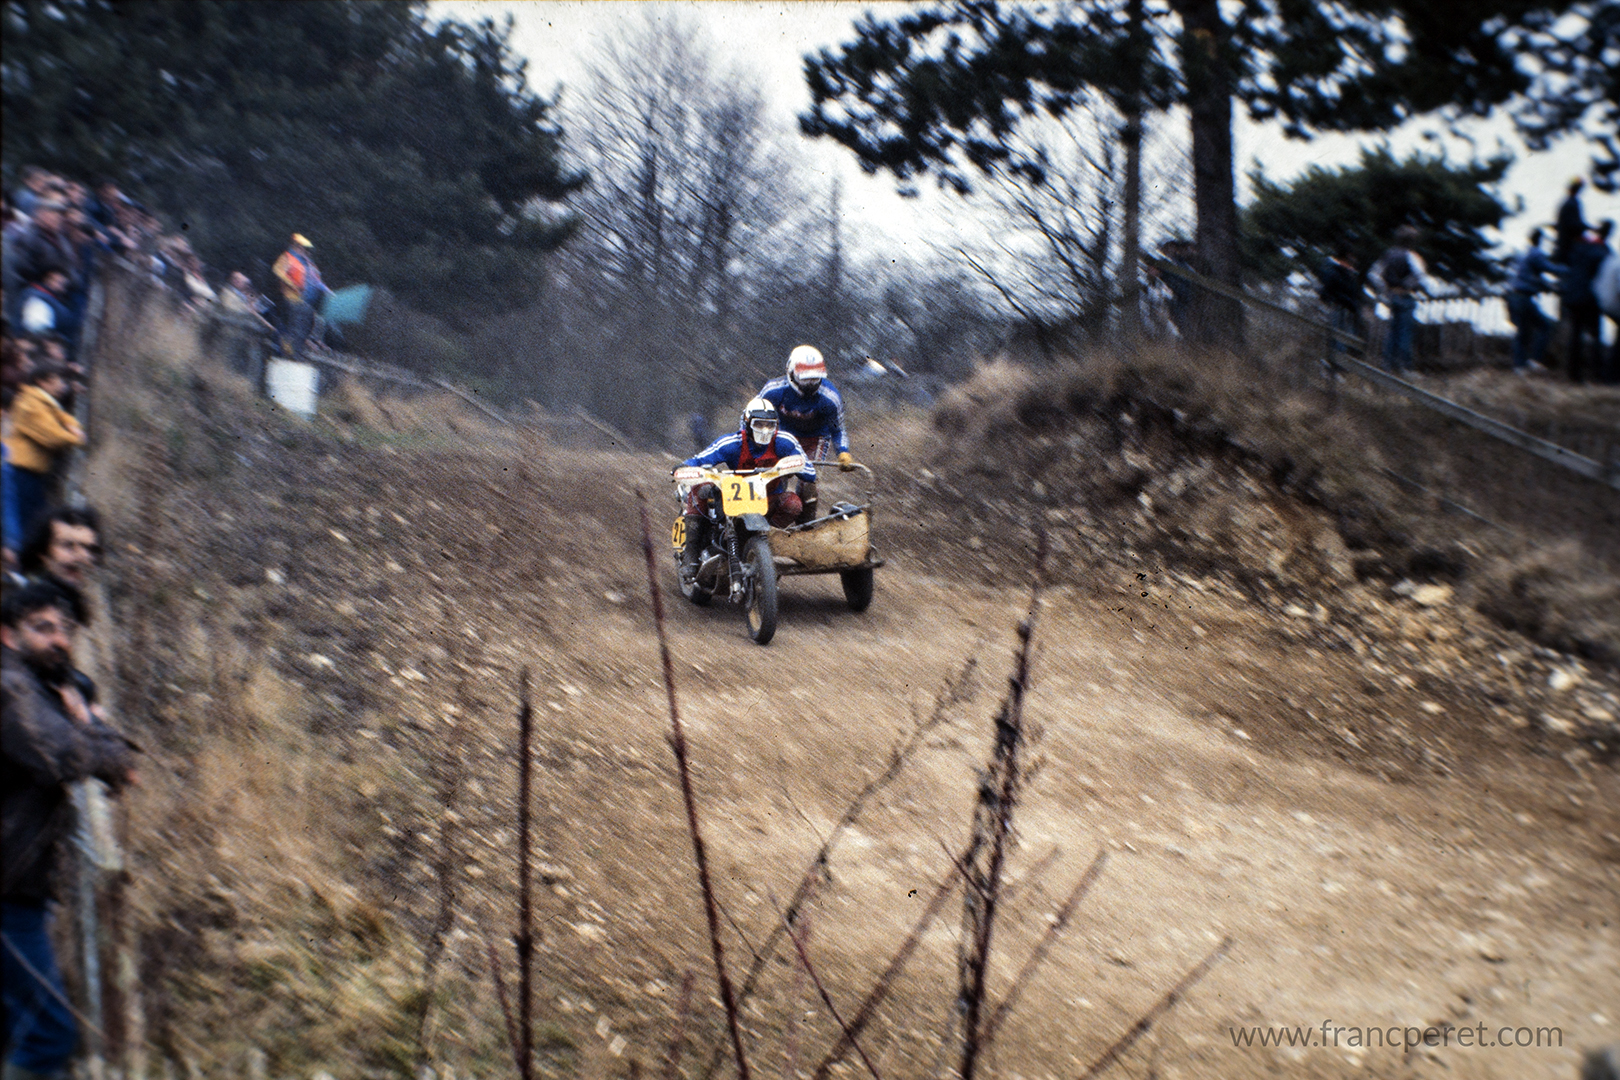 I am trying to fly over the bumps, full throttle, pushed by a Norton 930cc